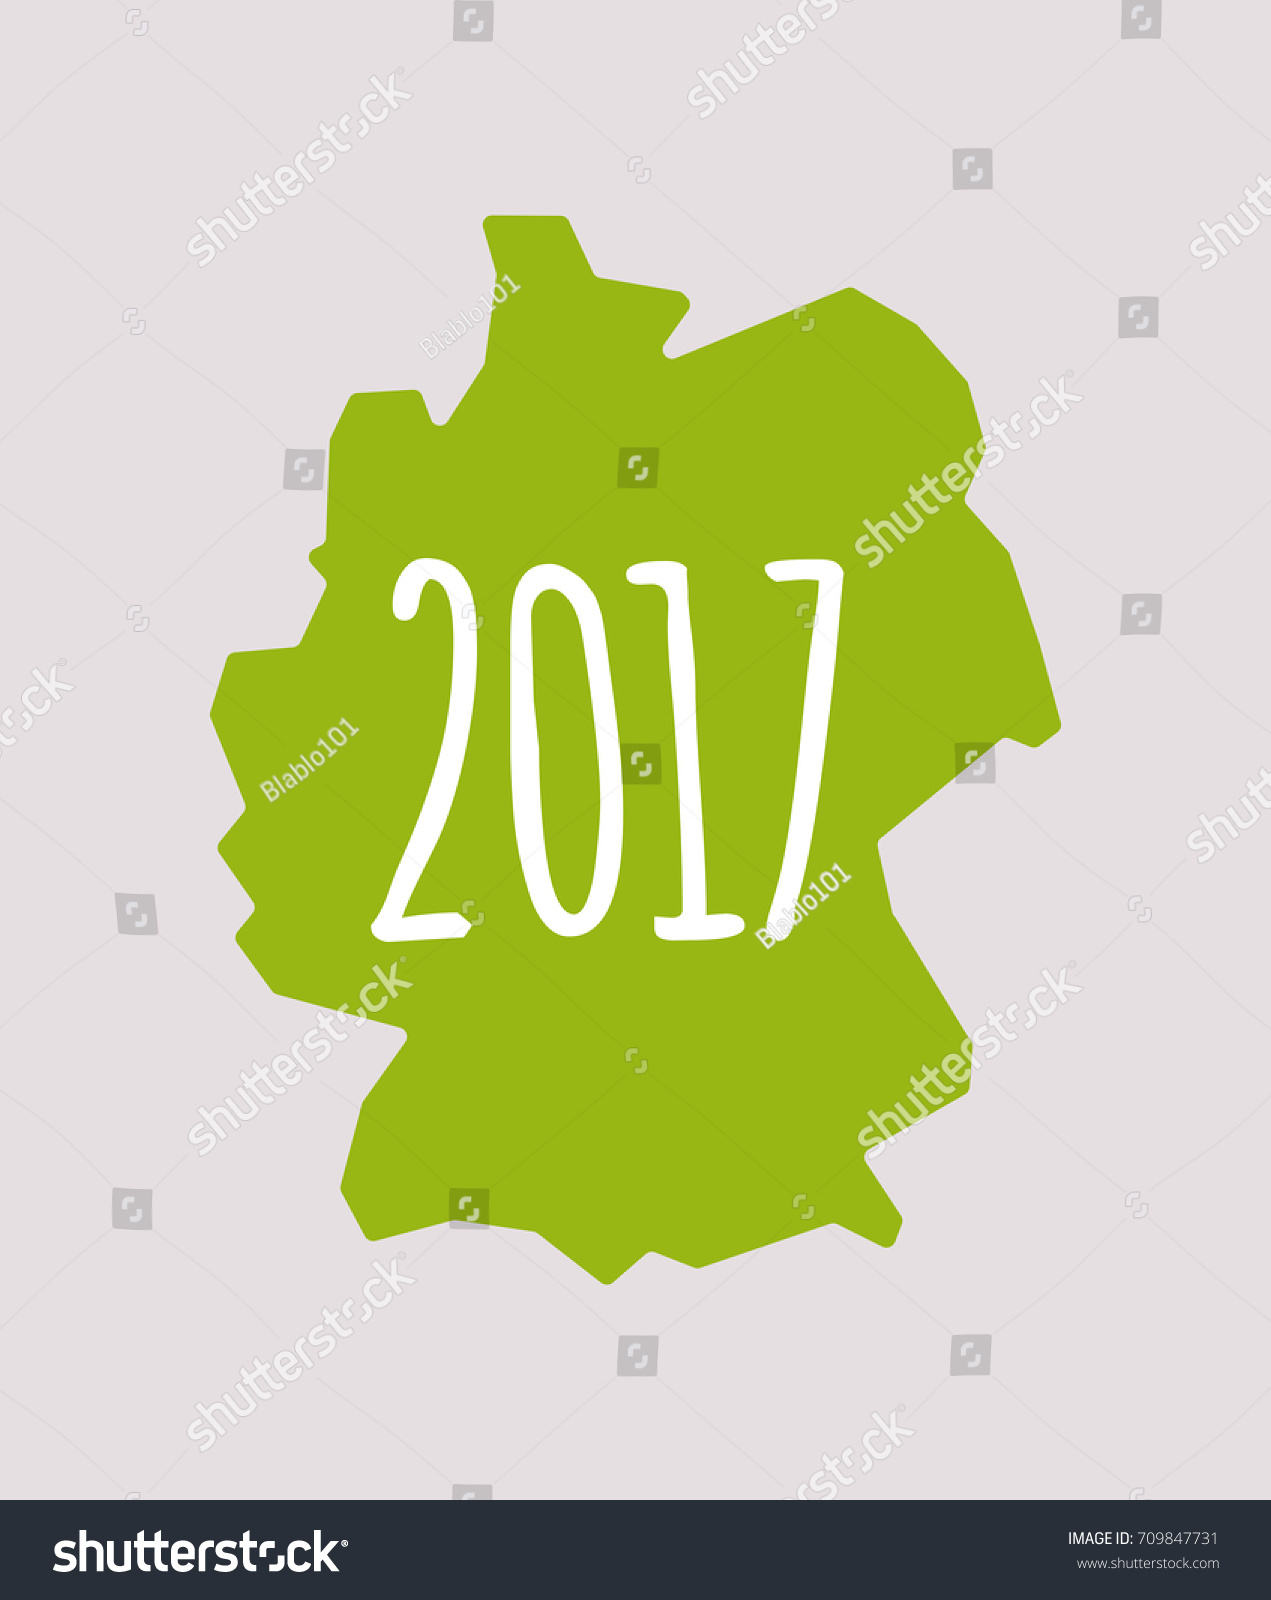 Illustration Isolated Germany Map Year Stock Vector - Germany map by year